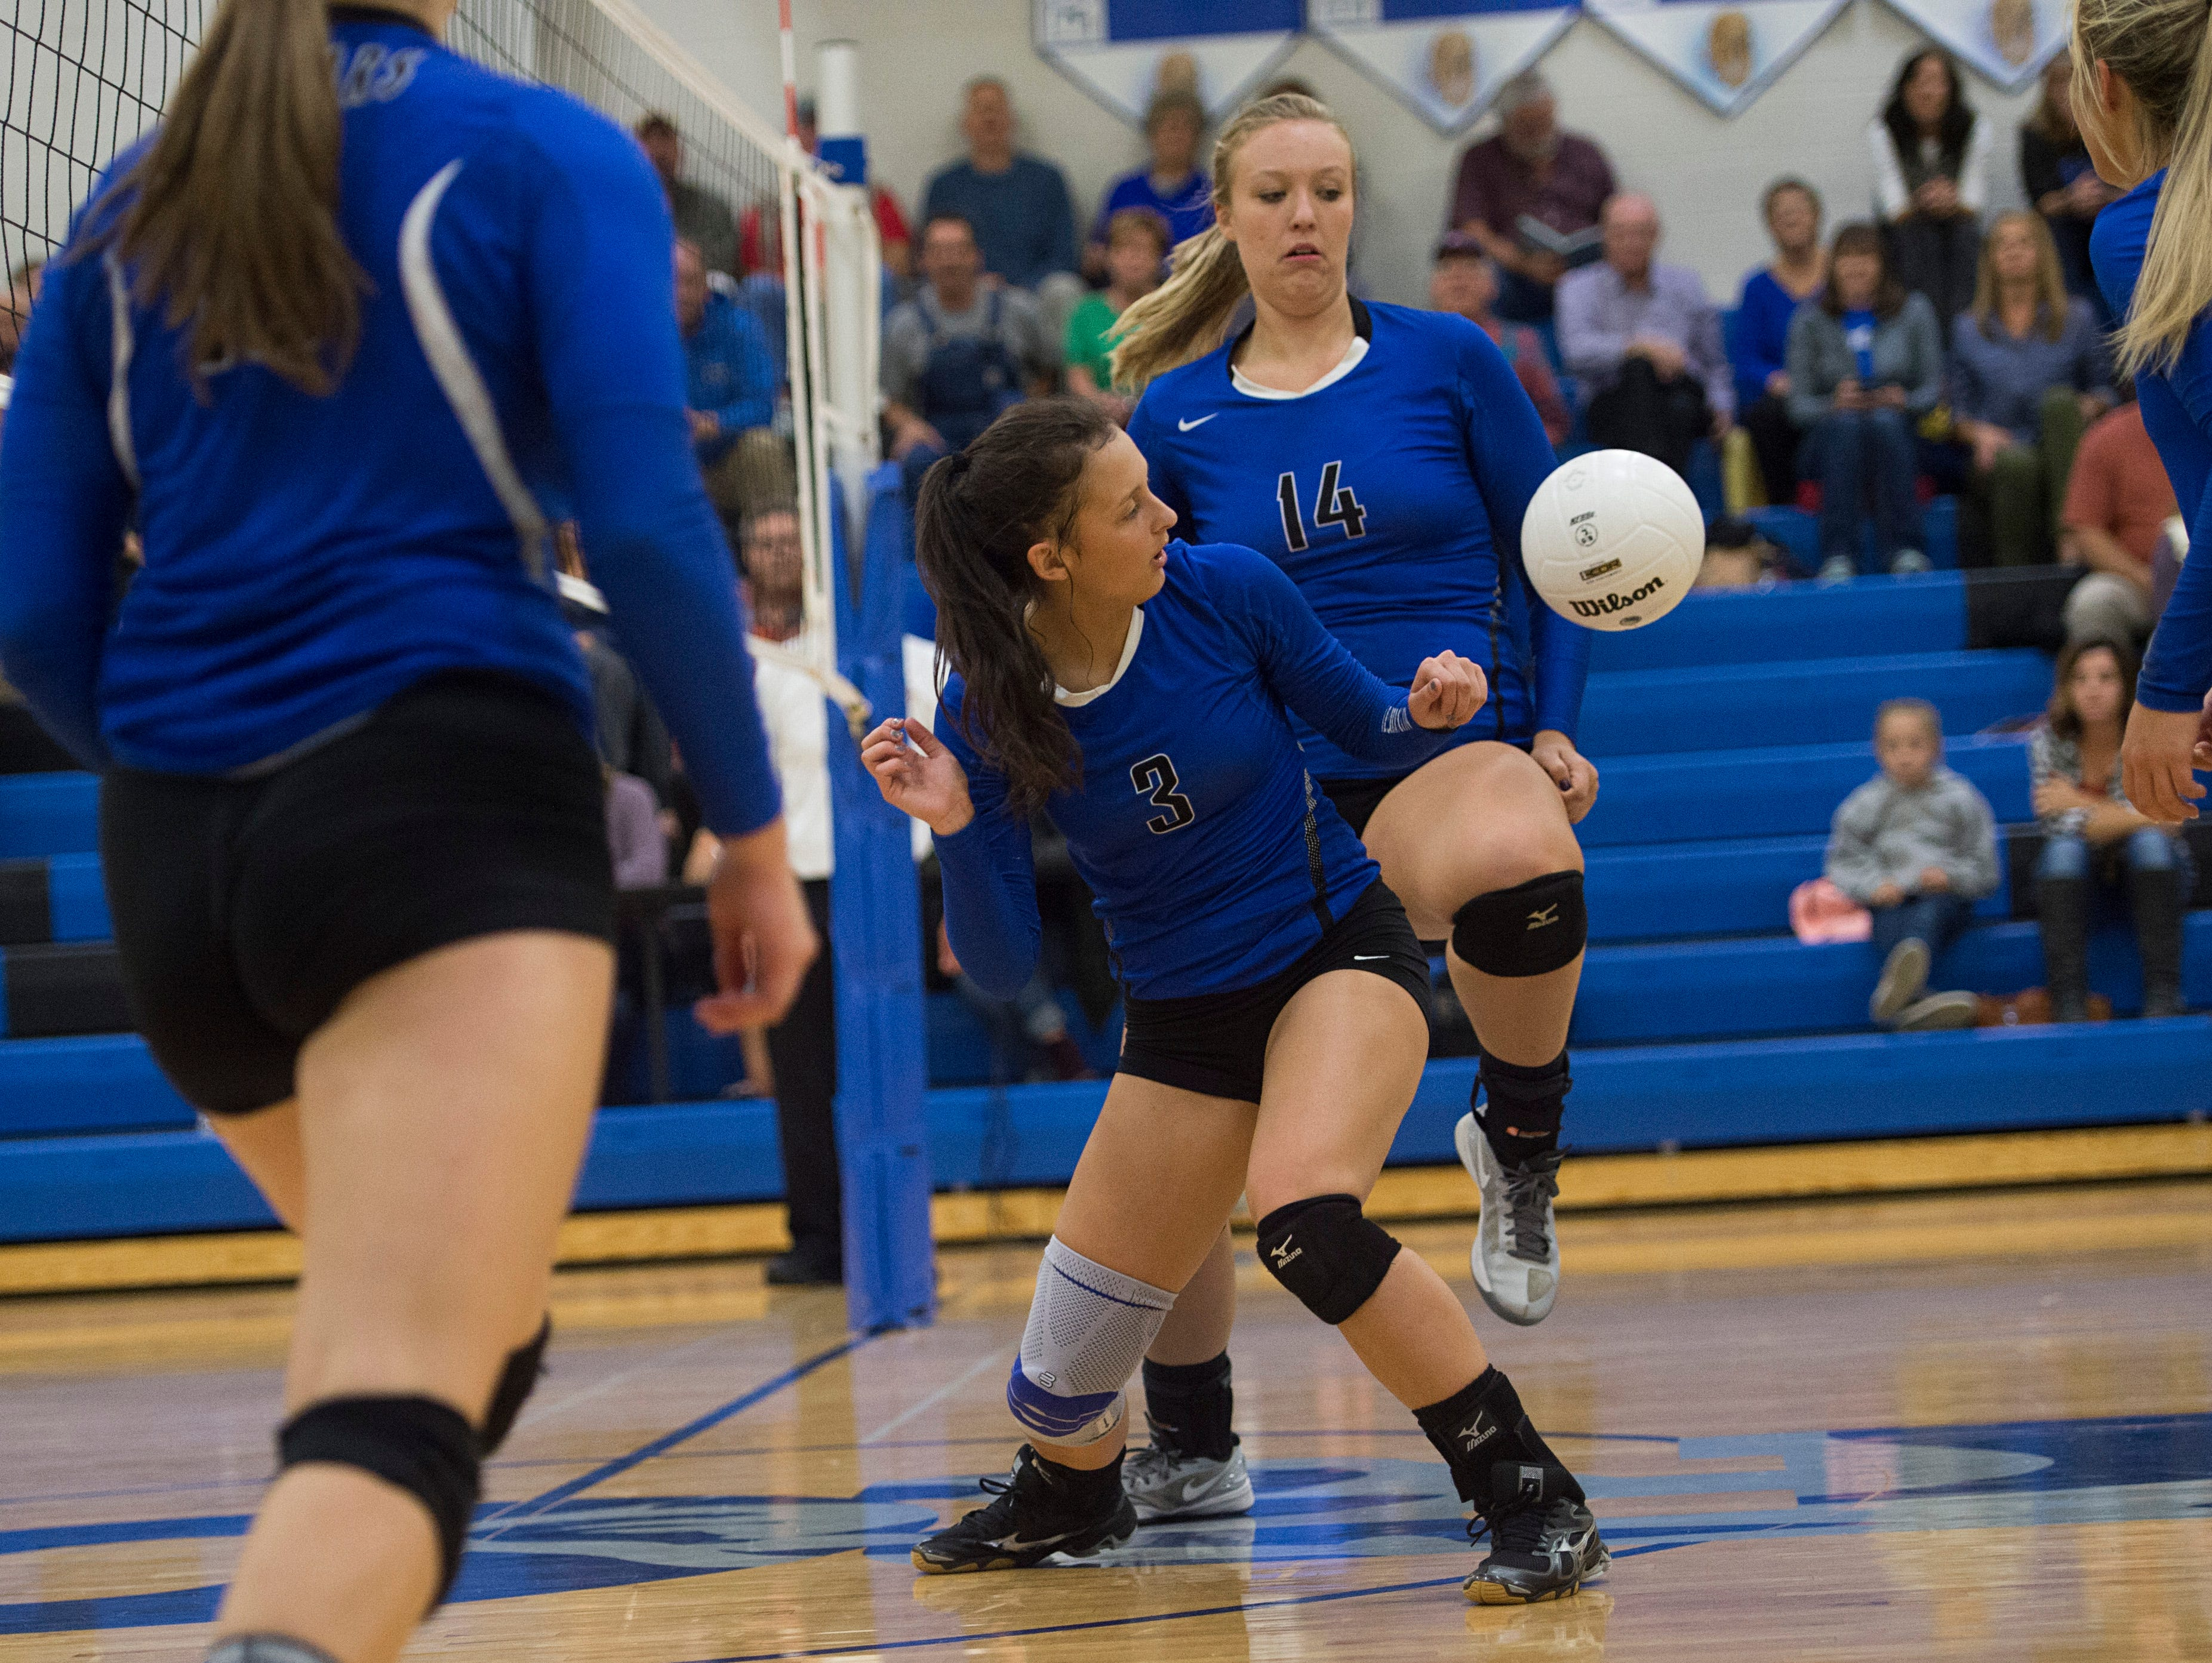 Saylor Webb and Kyra Zuhlke of Resurrection Christian try to gain control of the ball during a game against Eaton at Resurrection Christian School in Loveland Tuesday, October 18, 2016.